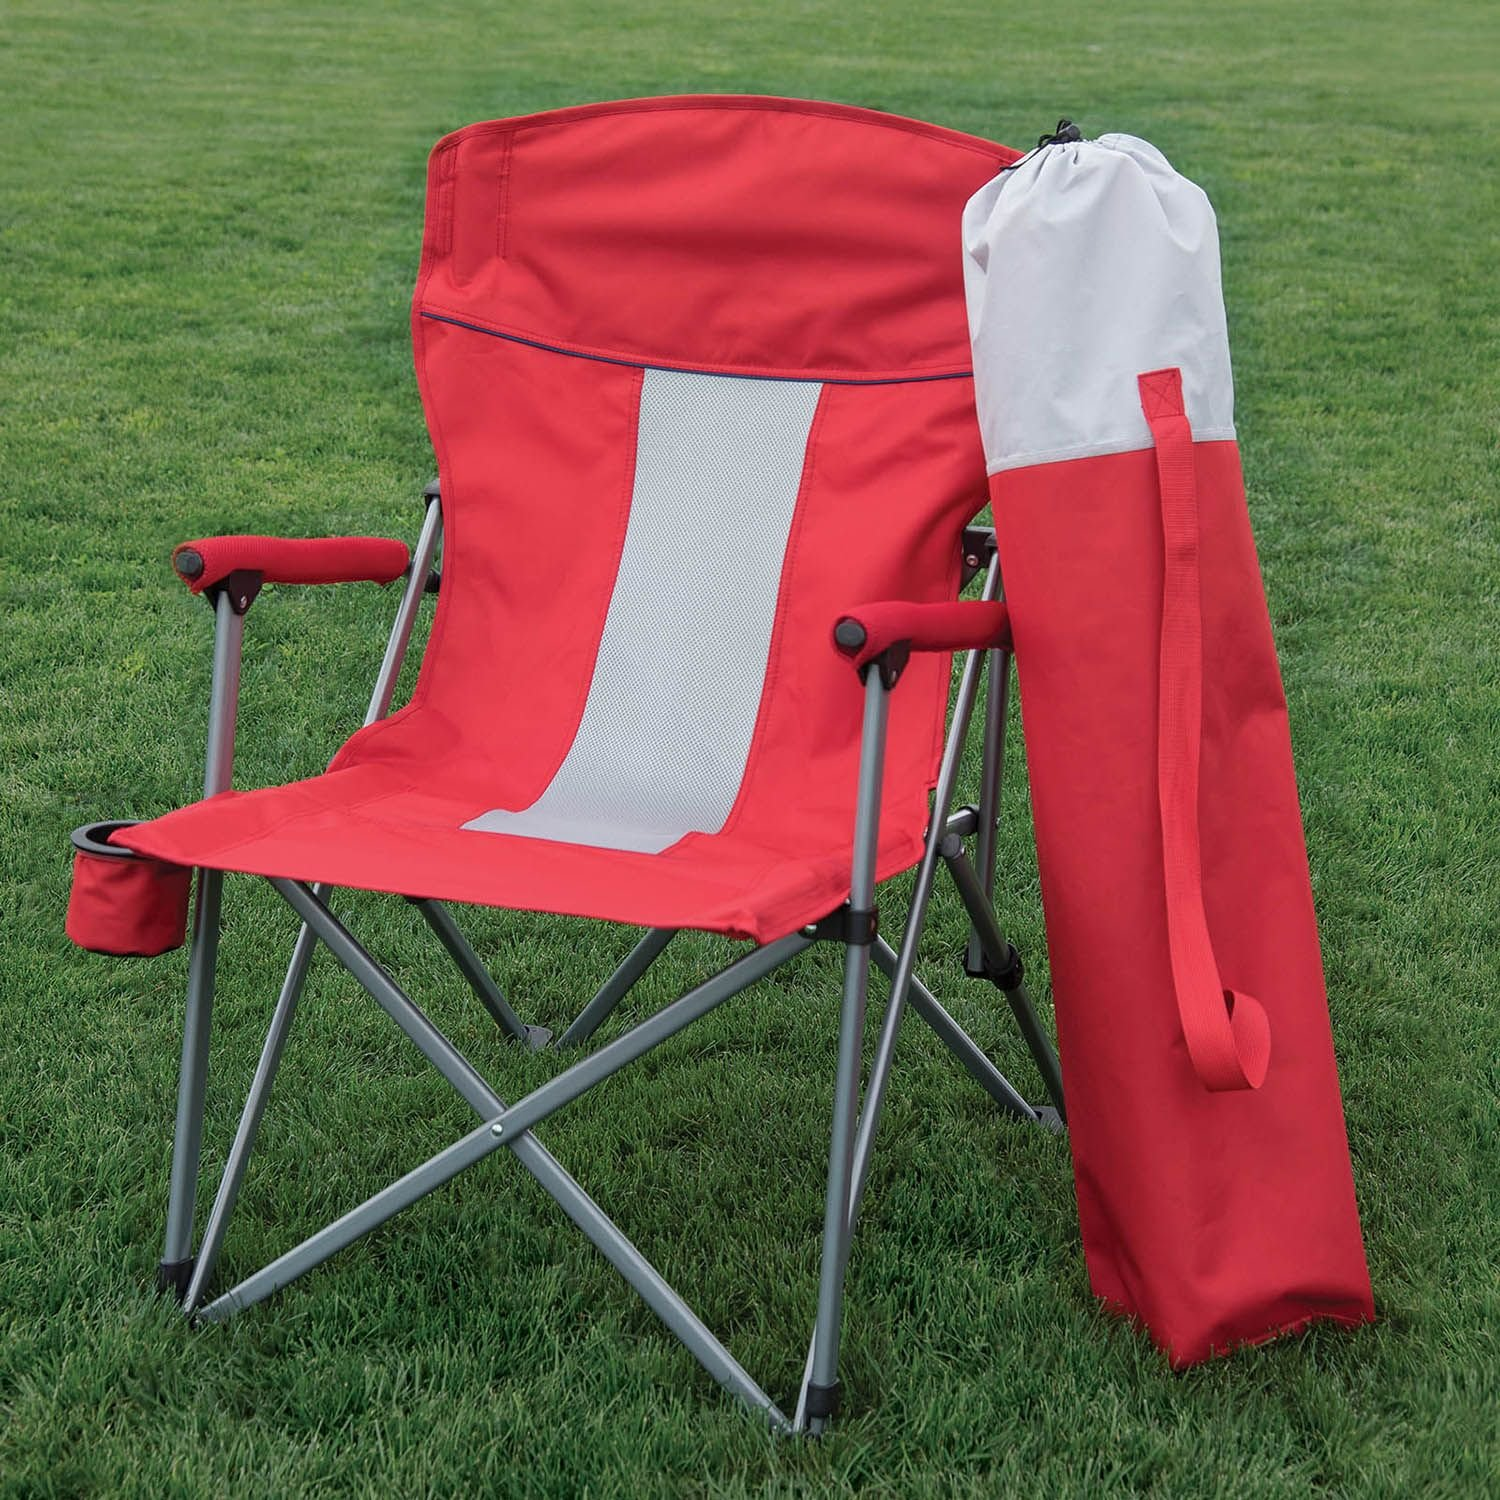 Member s Mark Folding Hard Arm Chair Red Amazon Patio Lawn